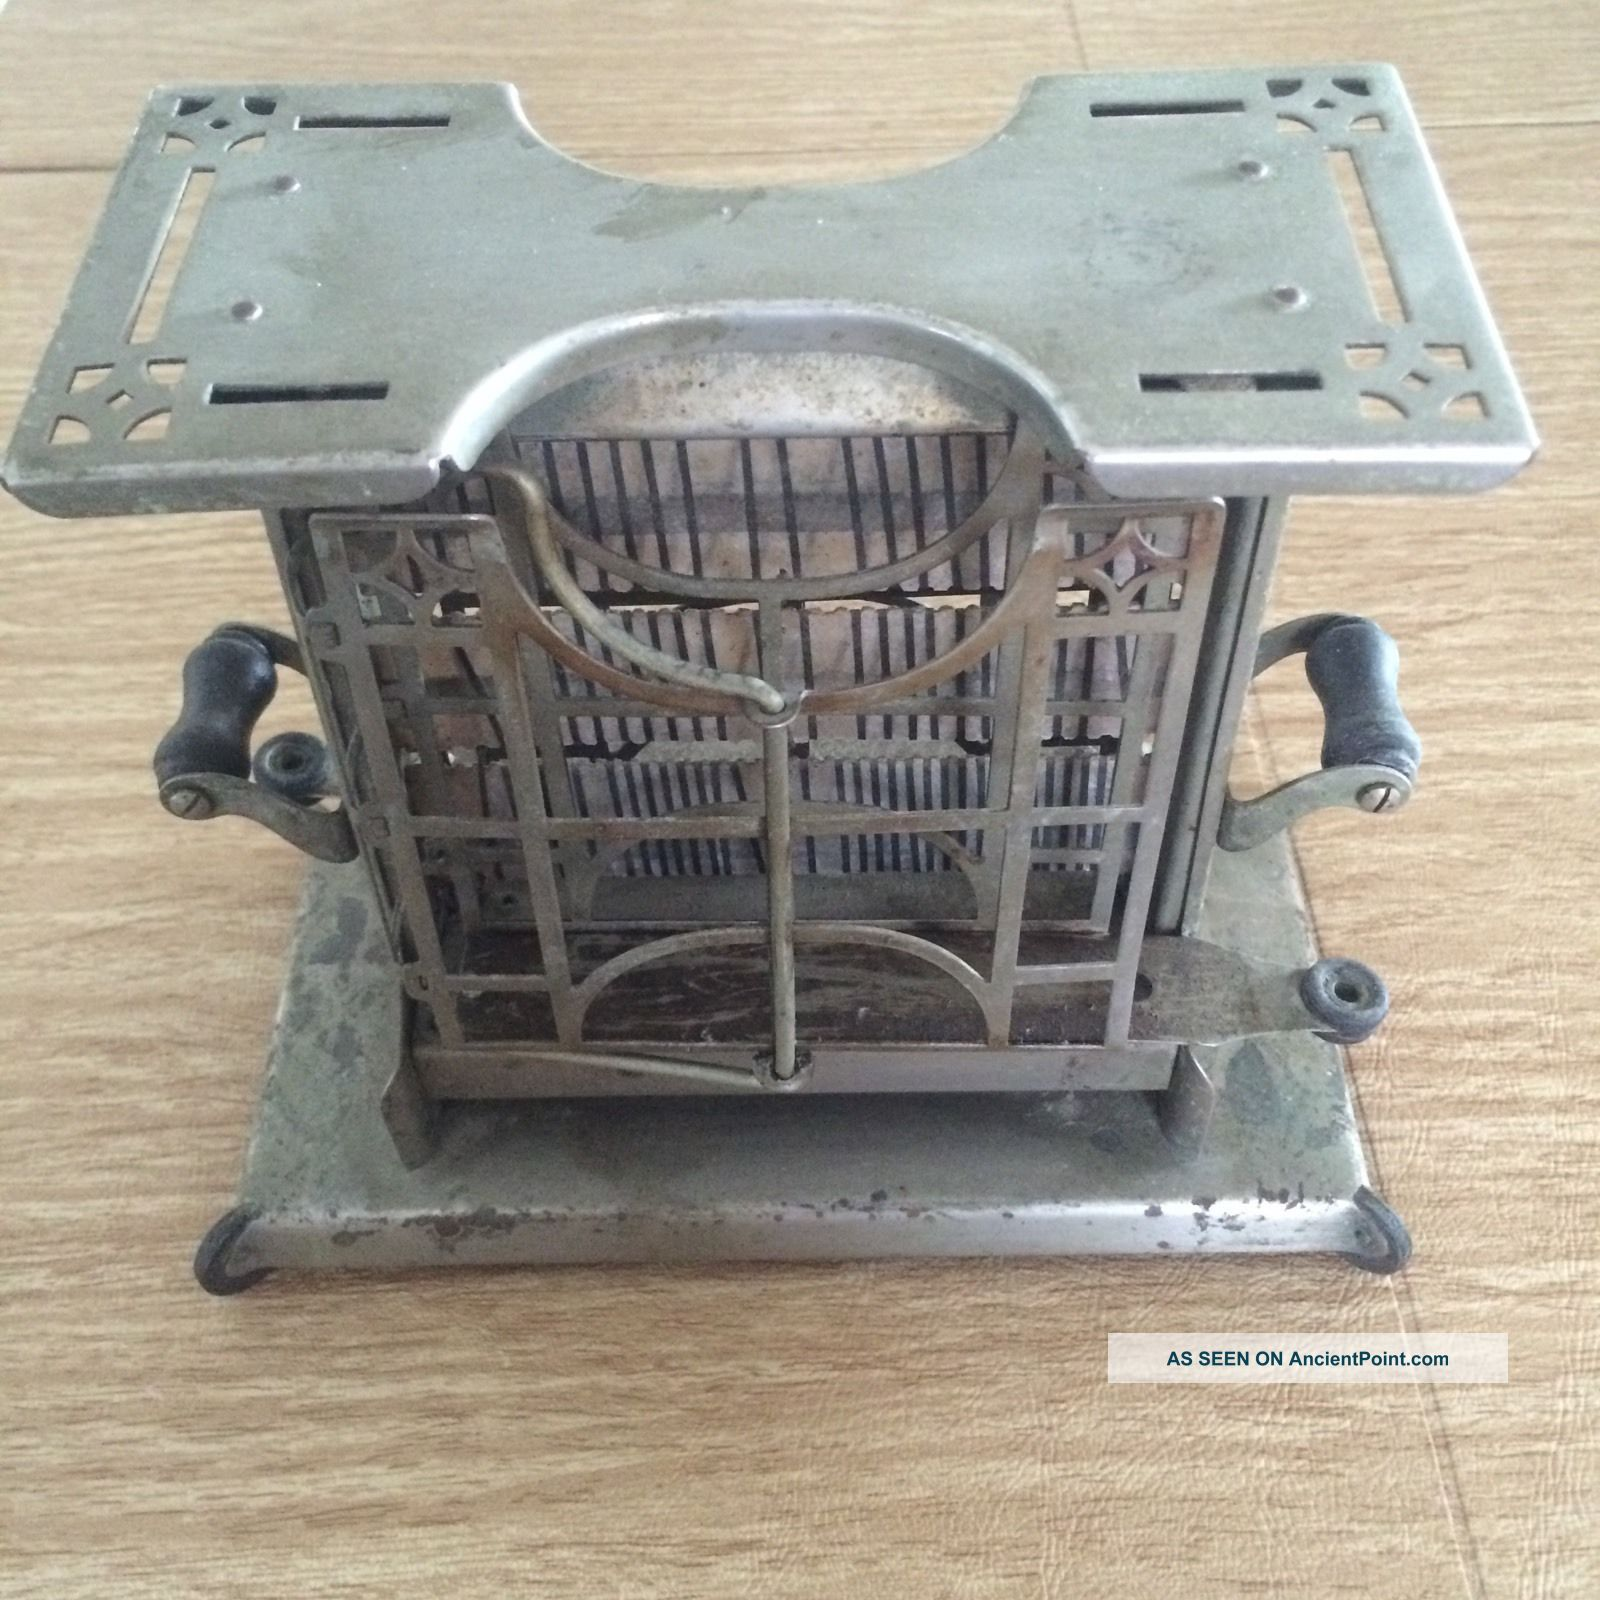 Antique 1920s Toaster Landers Frary & Clark Universal Vintage Toaster Toasters photo